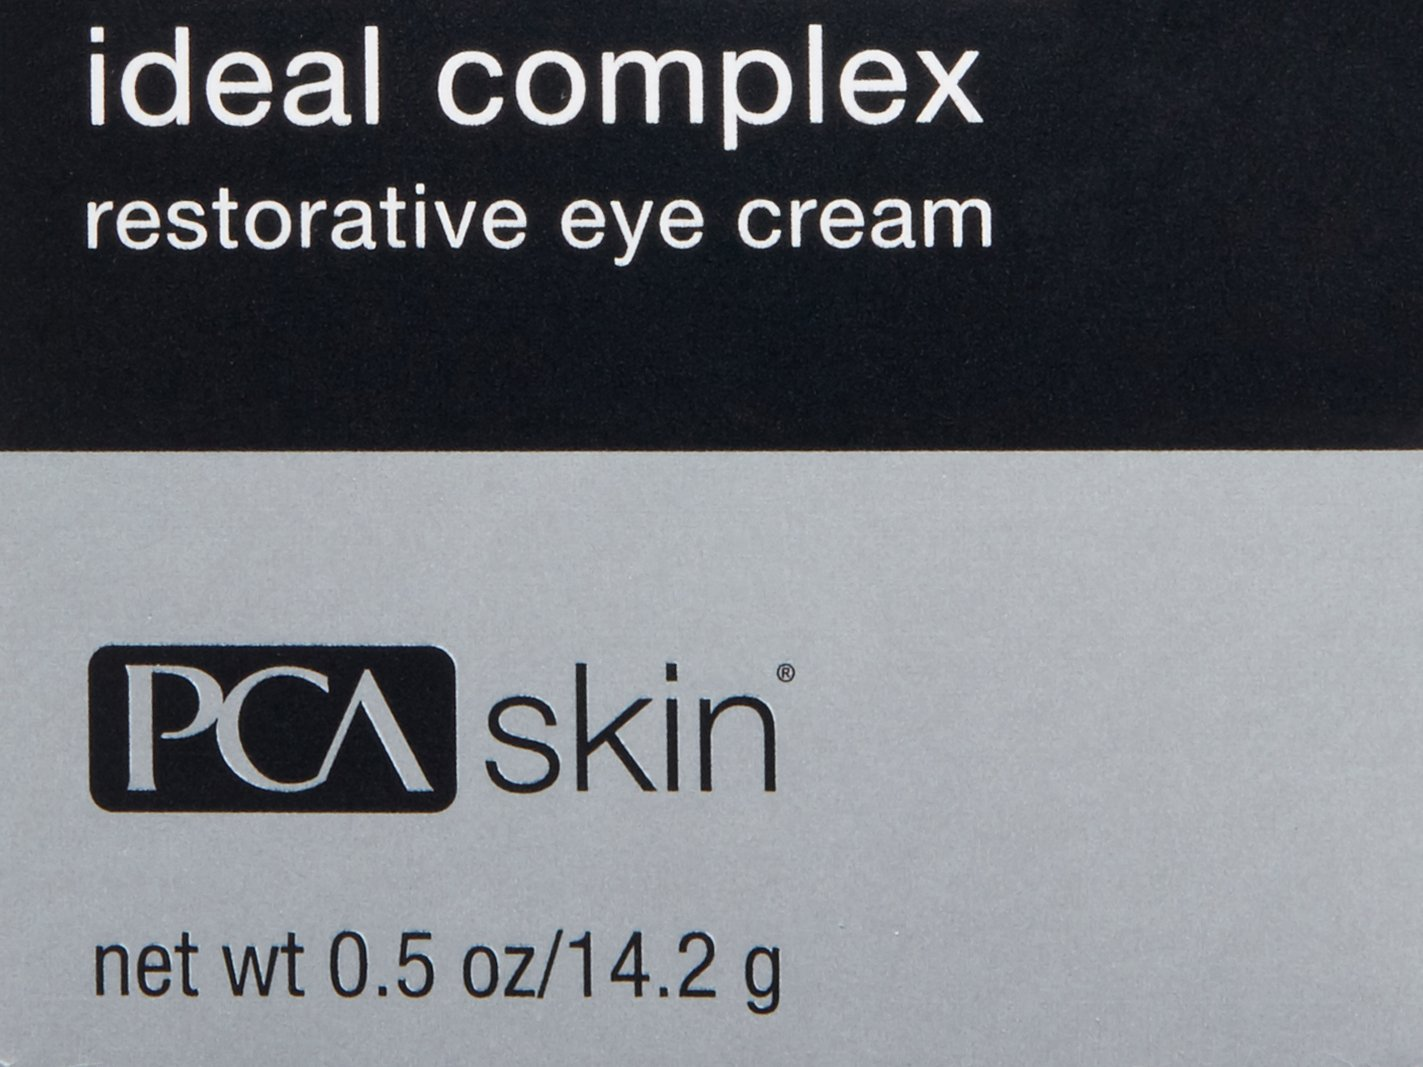 PCA SKIN Ideal Complex Restorative Eye Cream, 0.5 ounce by PCA SKIN (Image #4)